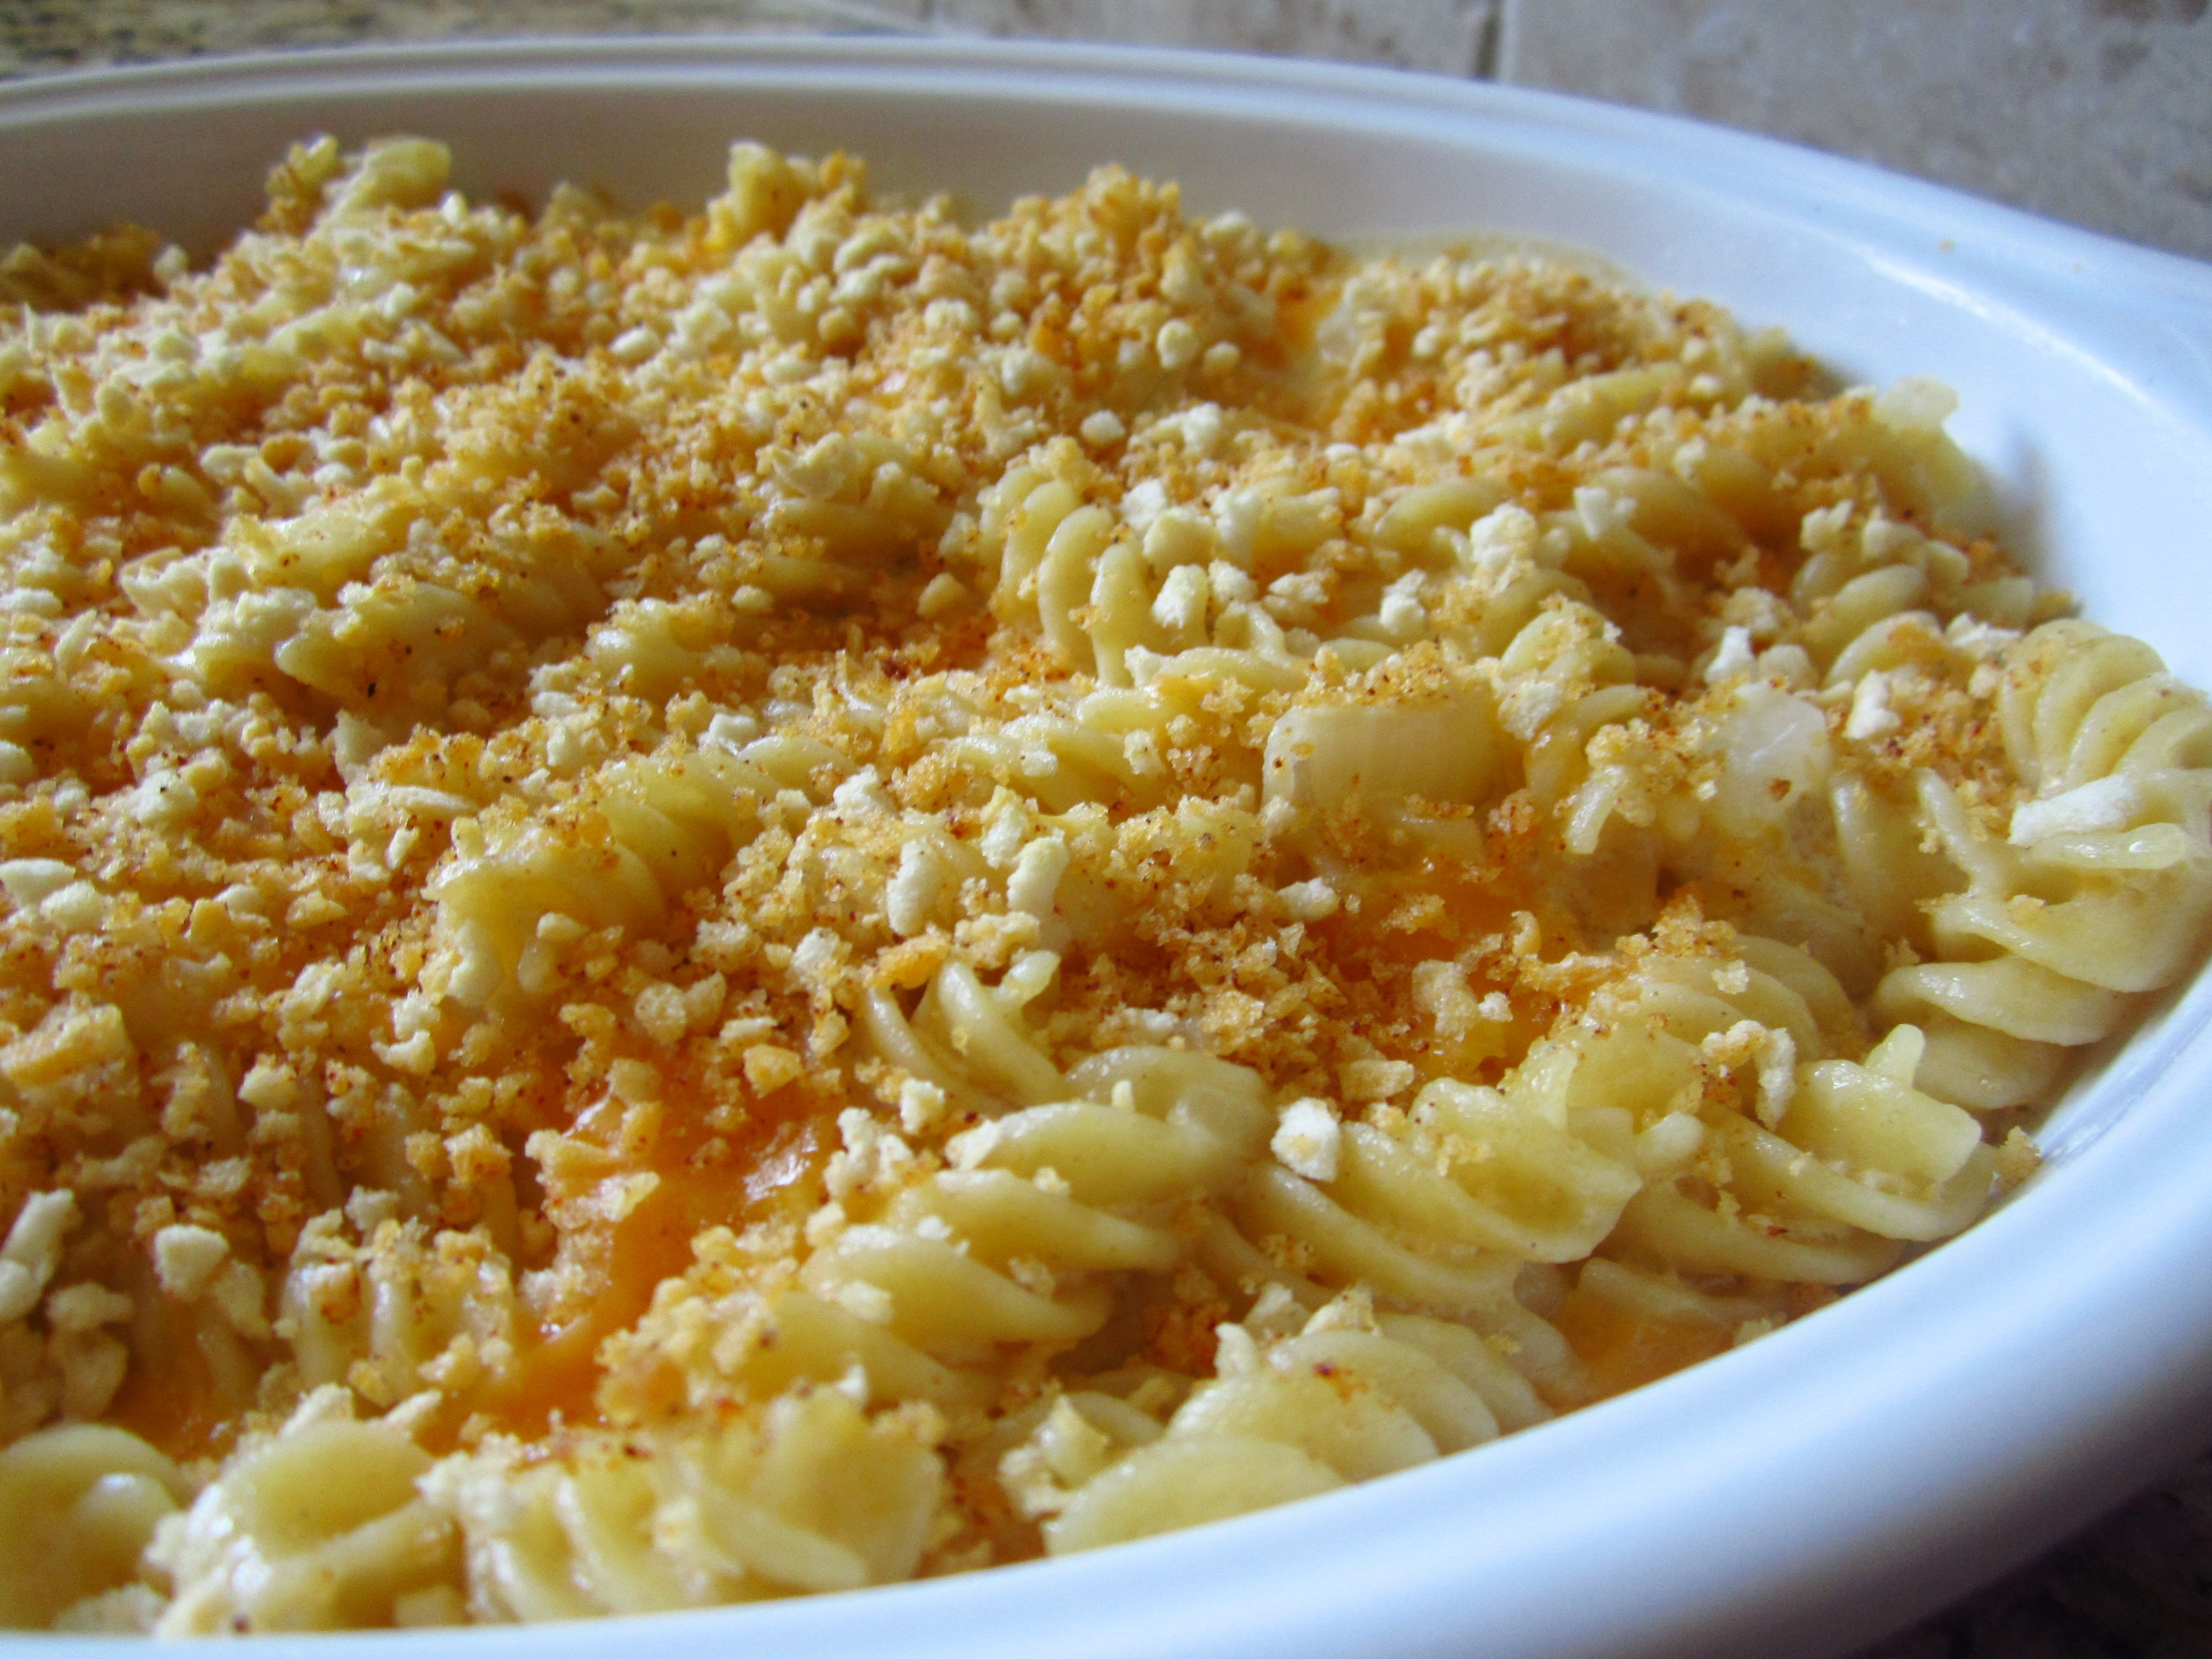 Fleming S Steakhouse Chipotle Cheddar Macaroni And Cheese Recipe